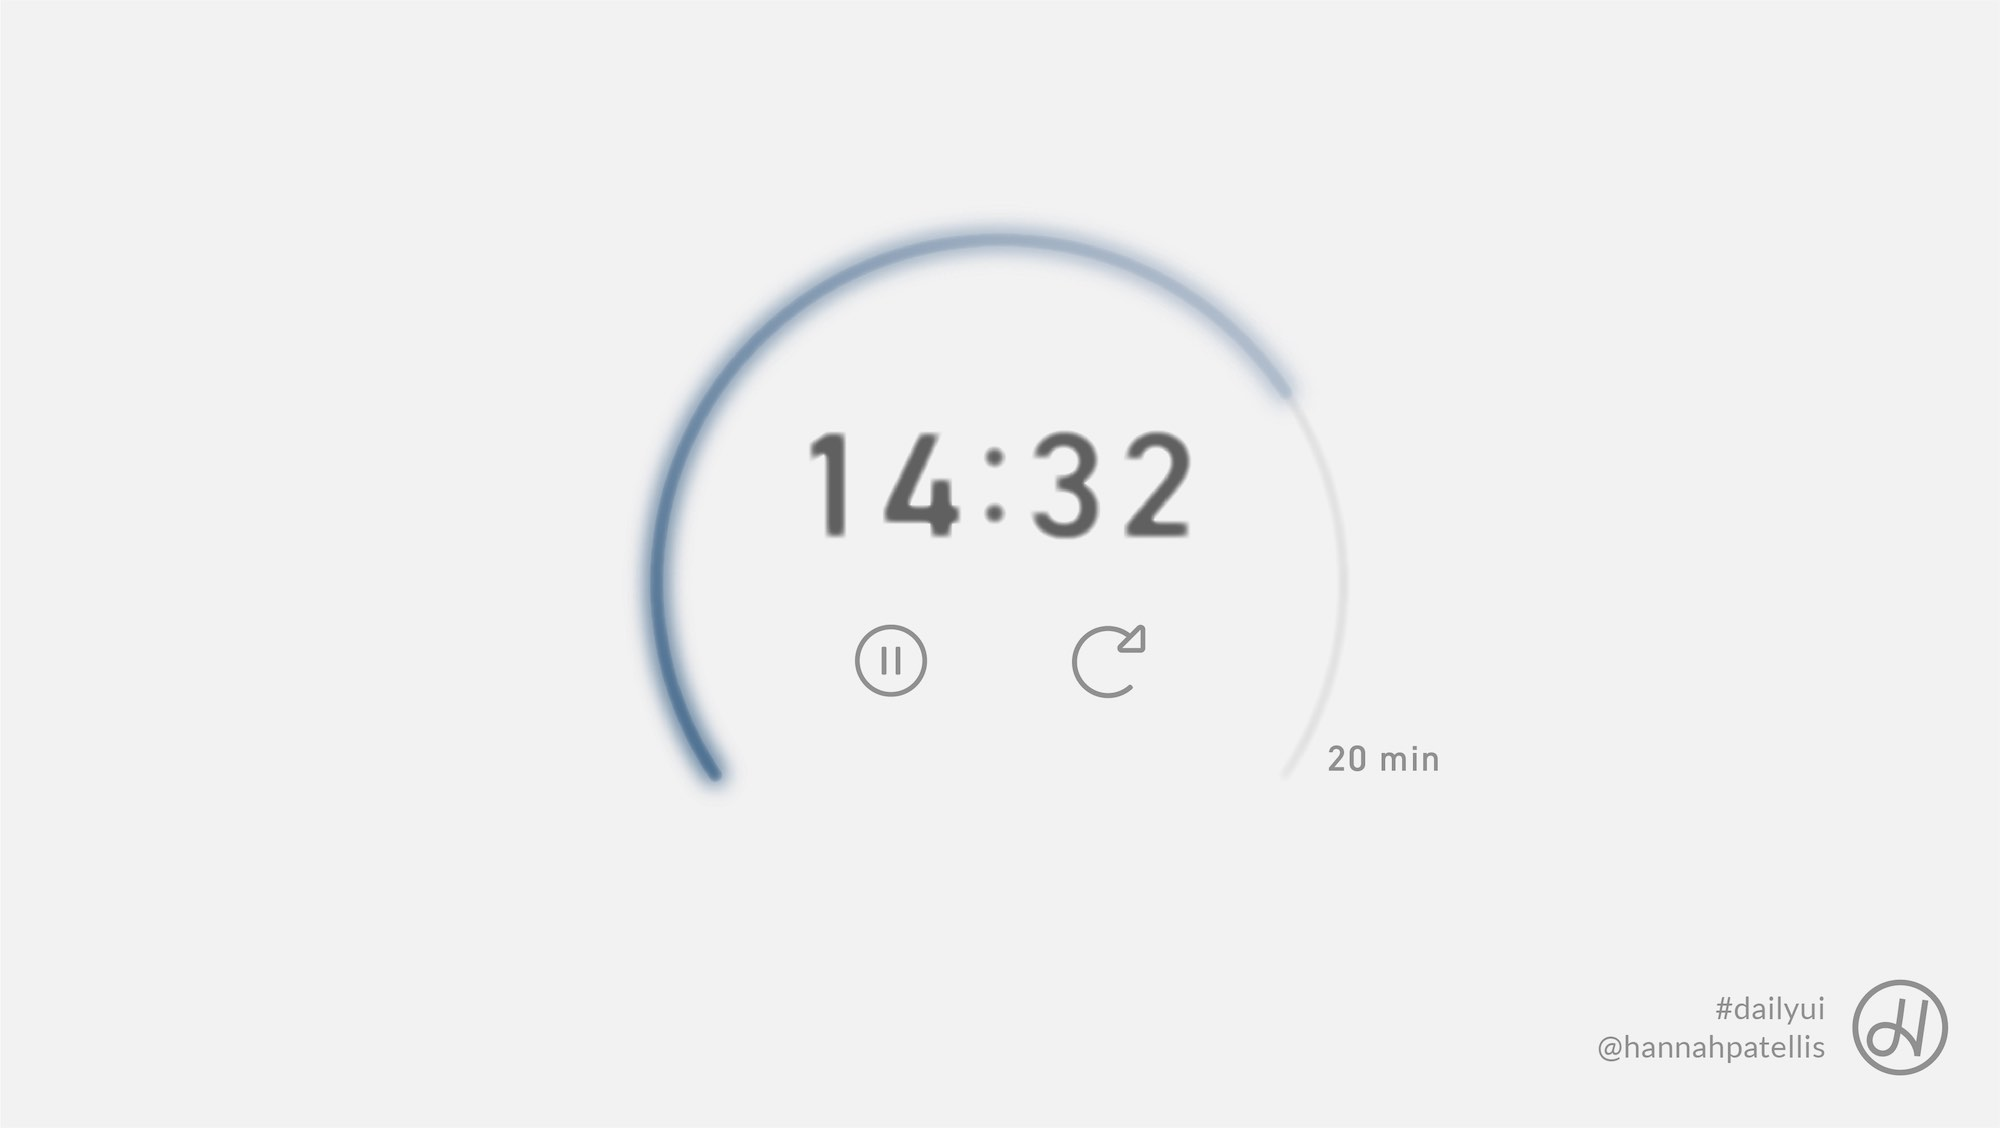 Countdown timer component user interface design